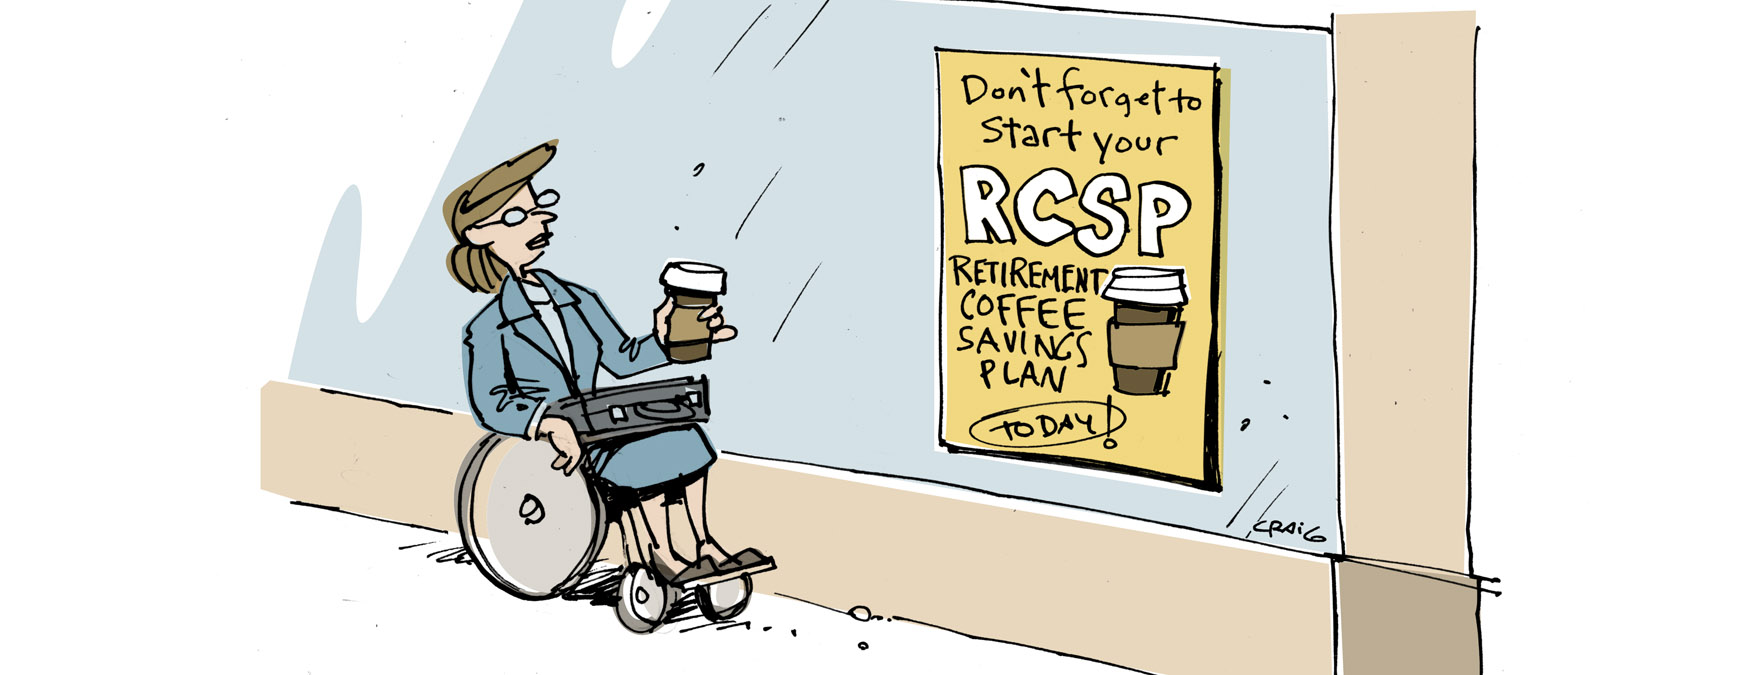 Retirement coffee